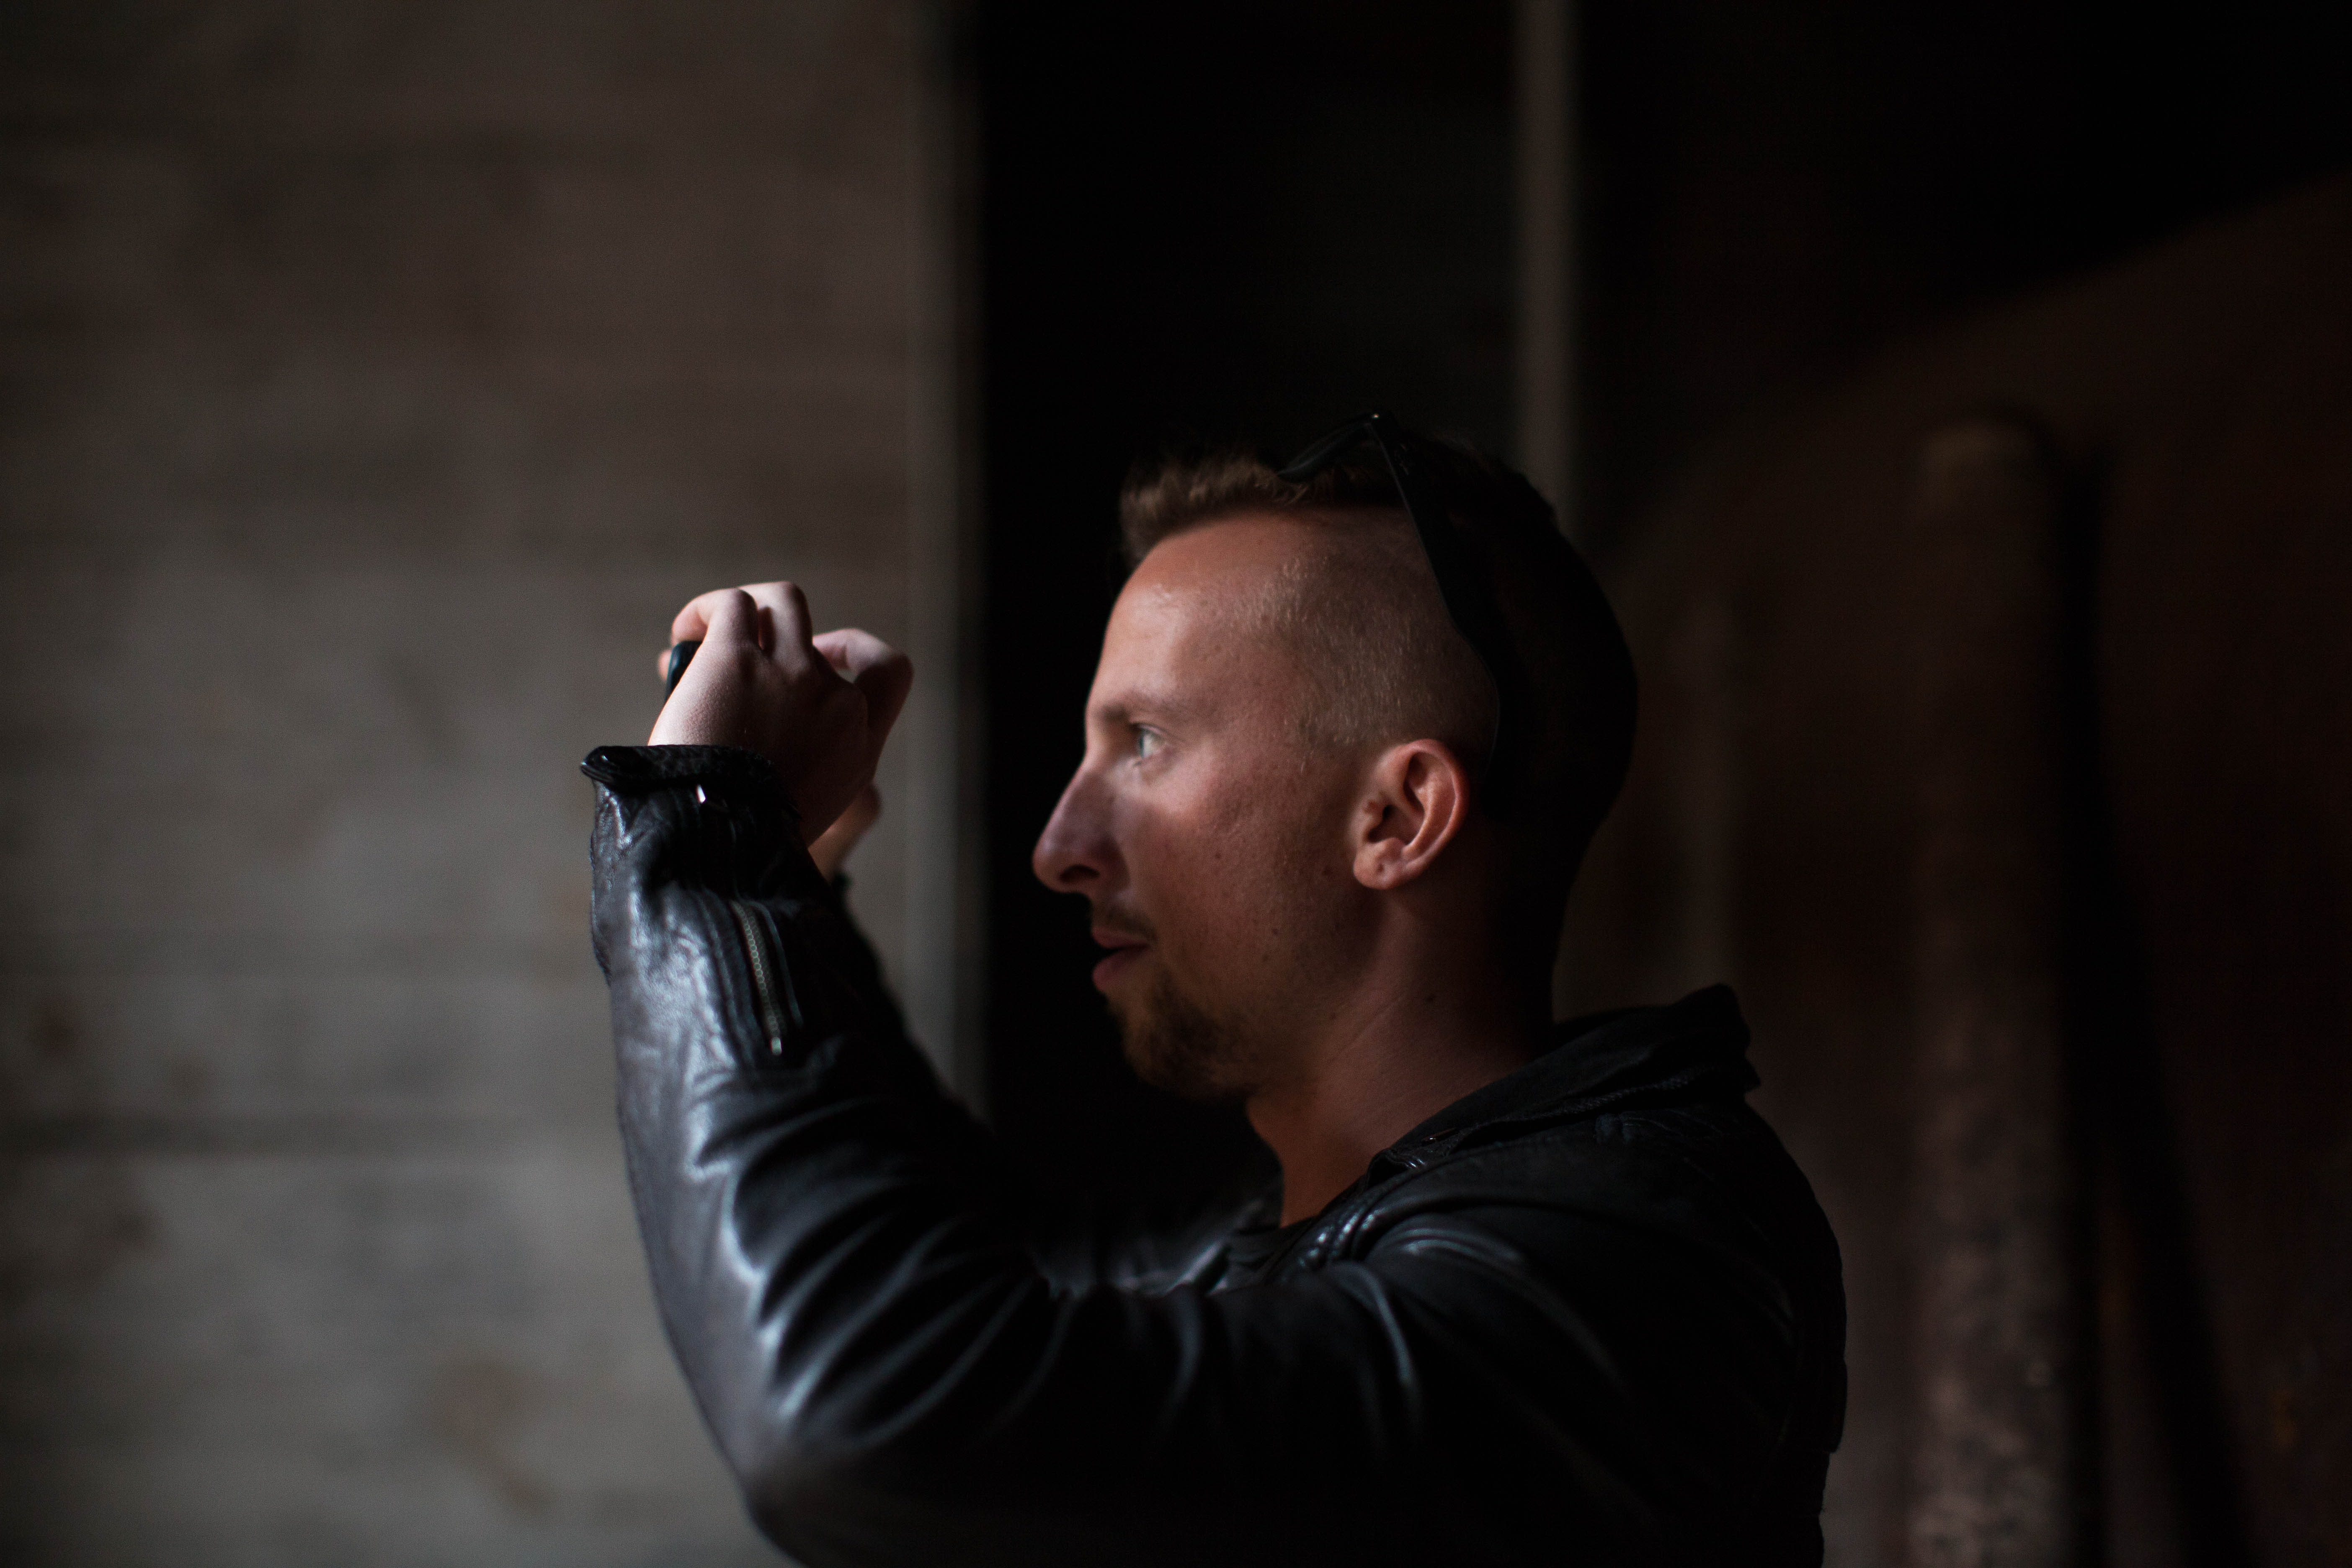 A man in a leather jacket in a dark area taking a picture on his phone